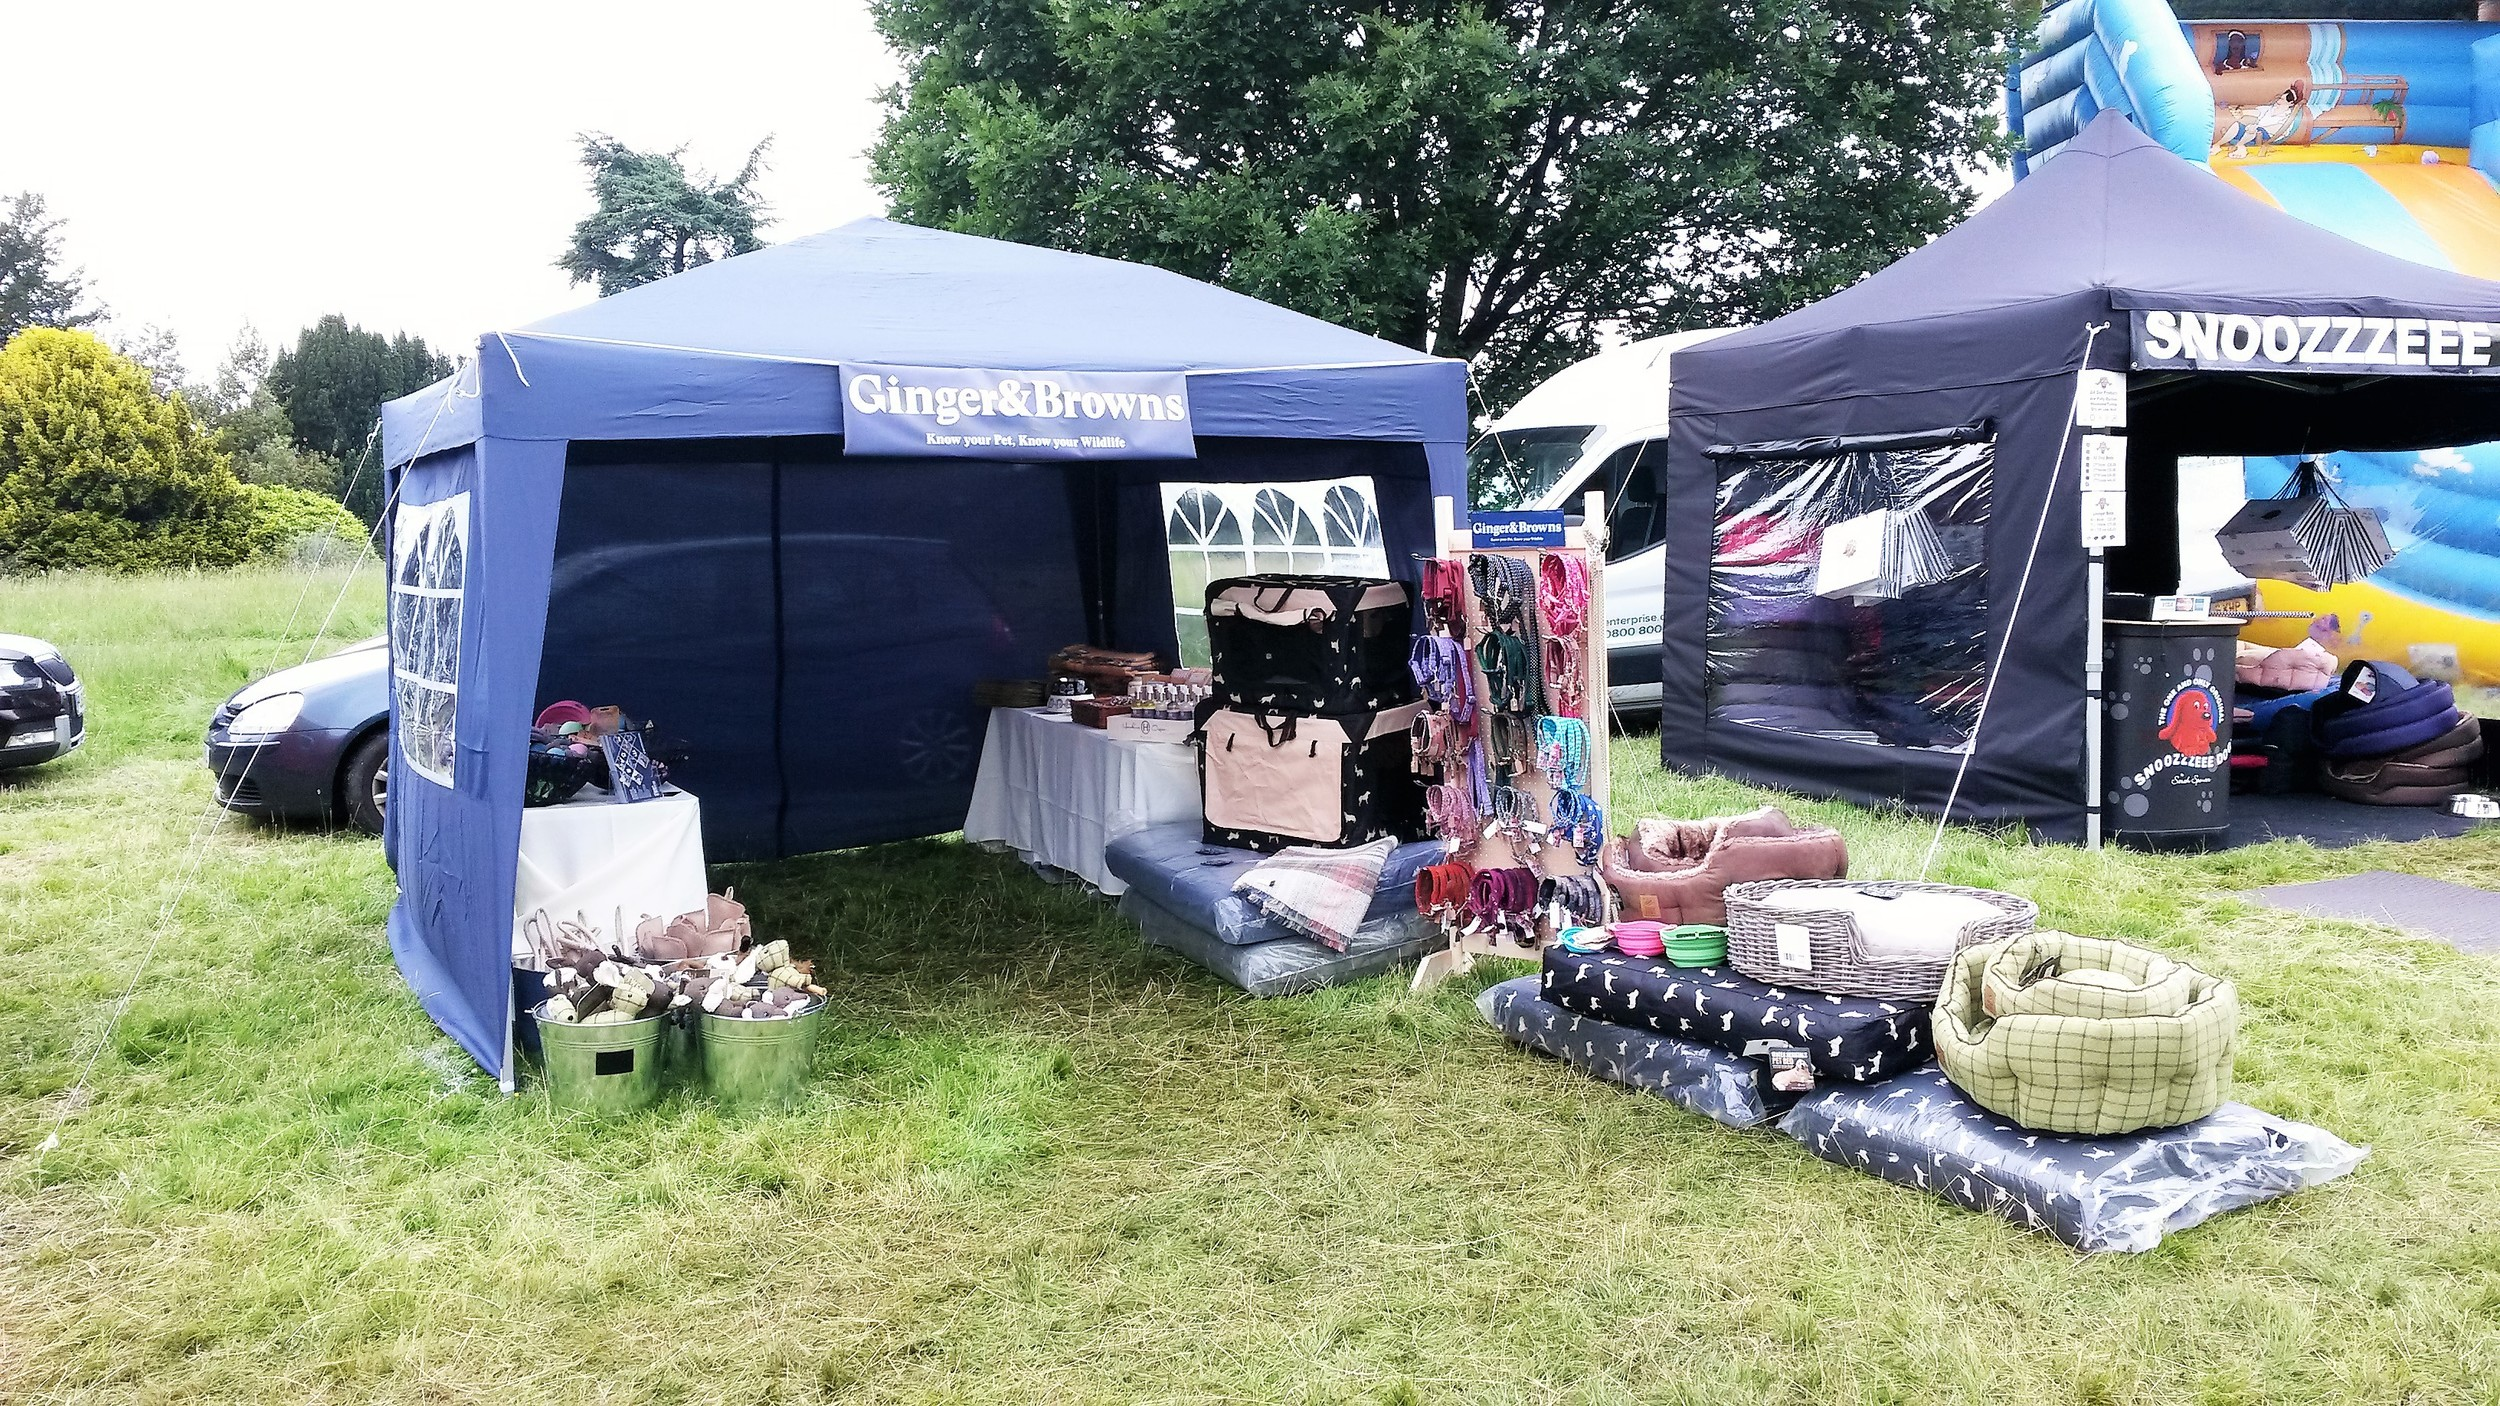 Ginger&Browns Stall ready for DogFest in Cheshire